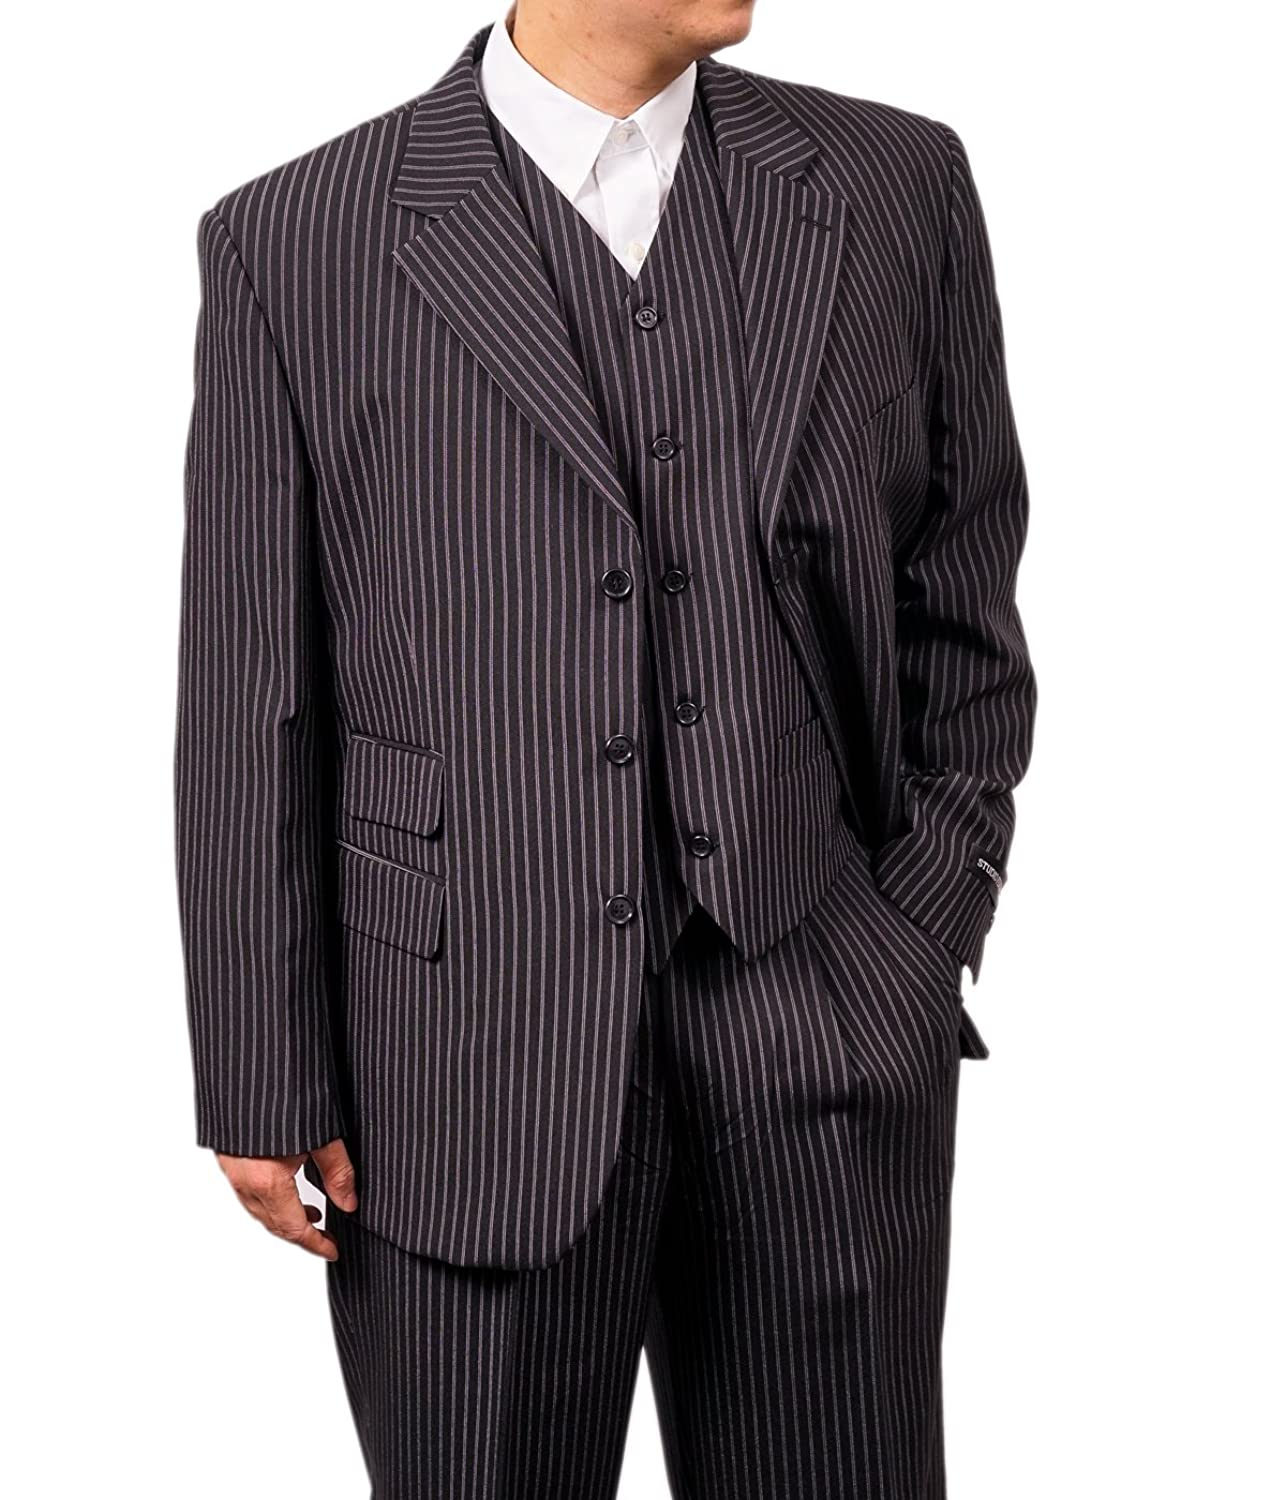 1920s Men's Suits History New Mens 3 Piece Black Gangster Pinstripe Dress Suit with Matching Vest $119.99 AT vintagedancer.com